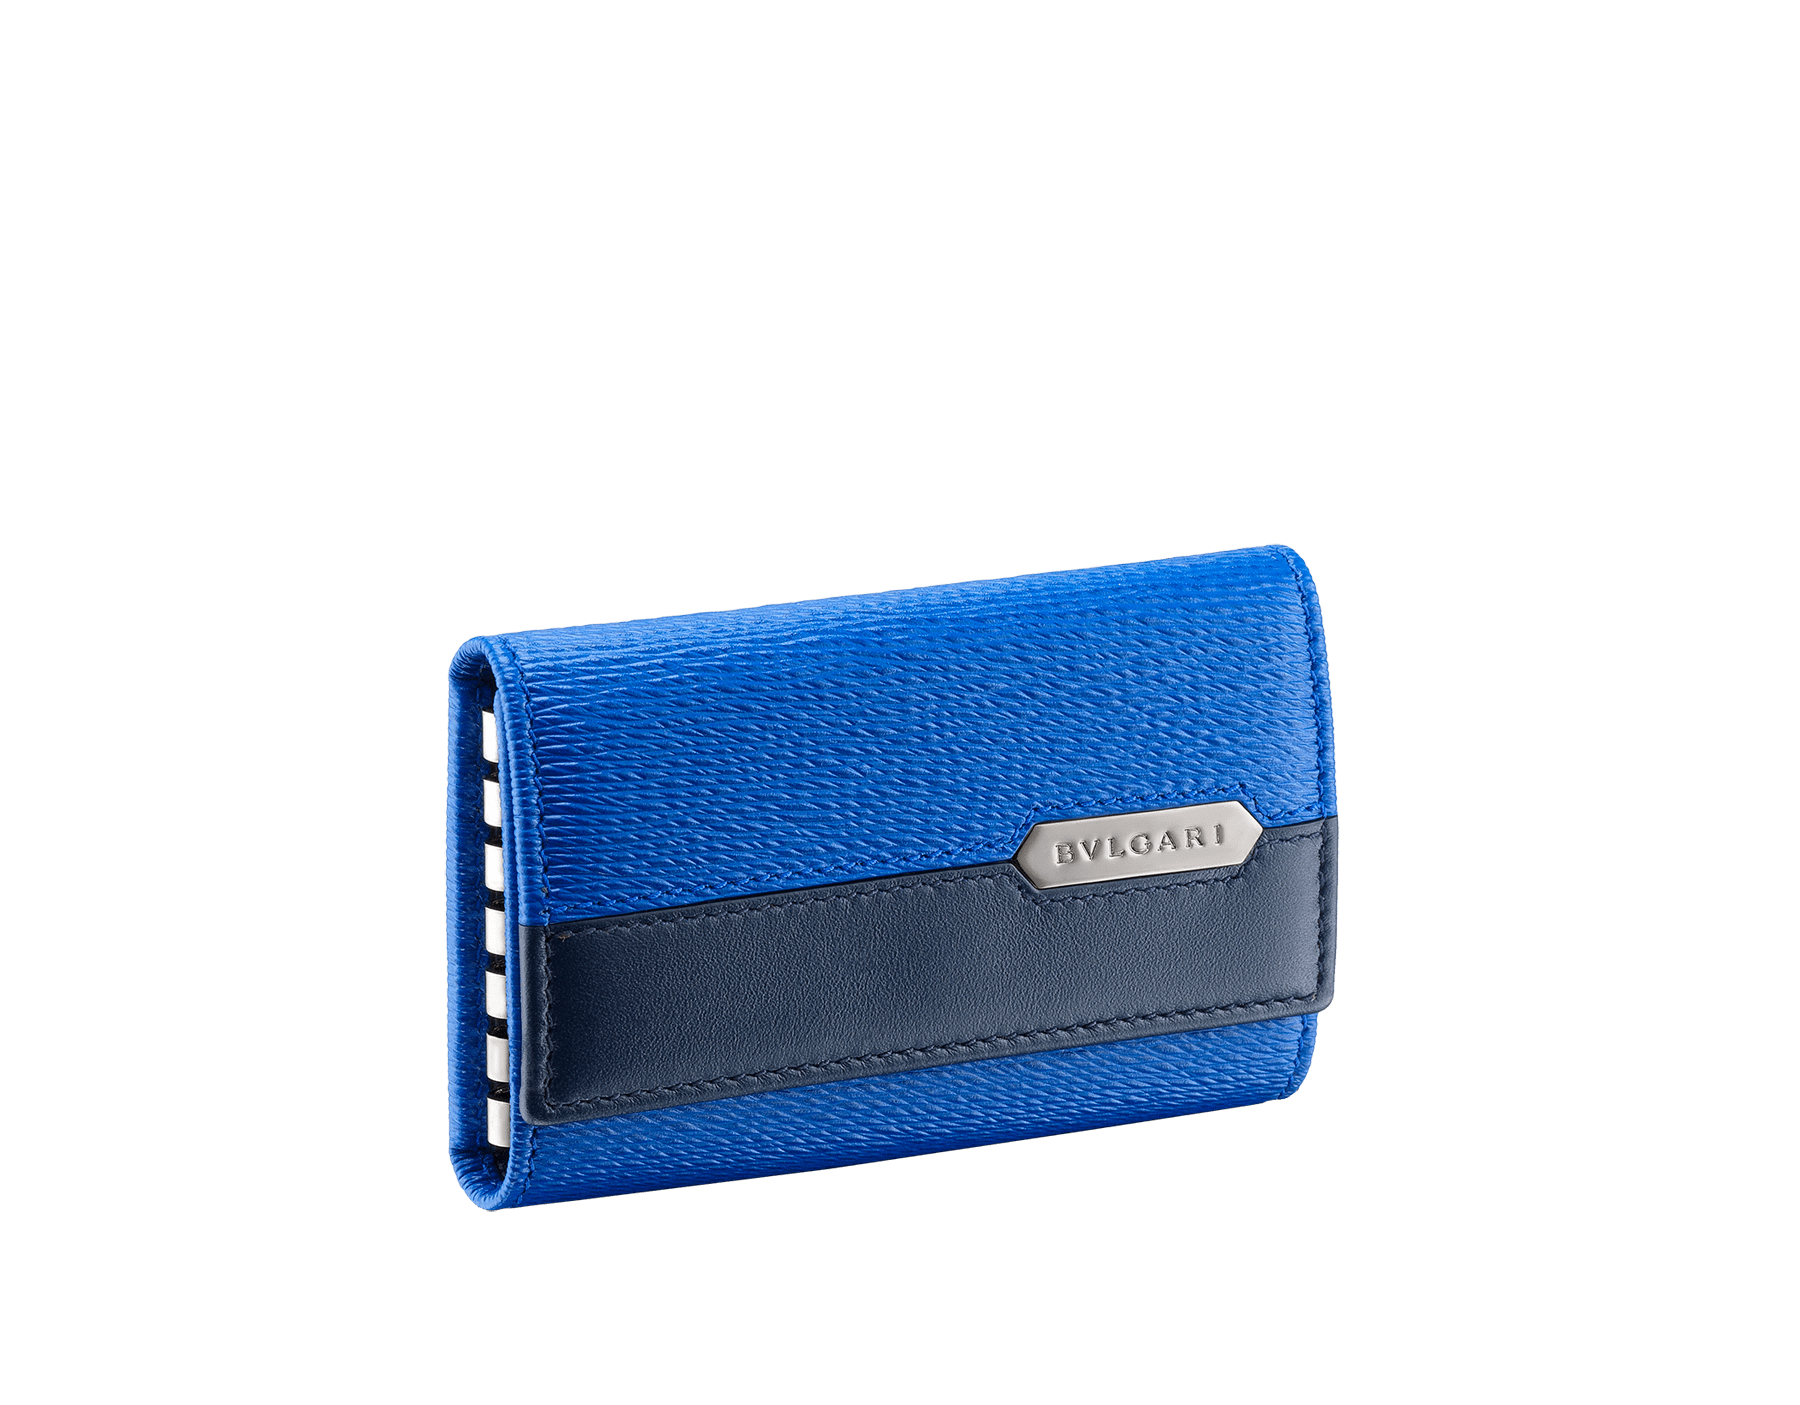 Serpenti Scaglie men's key holder in cobalt tourmaline grazed calf leather and denim sapphire calf leather. Bvlgari logo engraved on the hexagonal scaglie metal plate finished in dark ruthenium. 288459 image 1